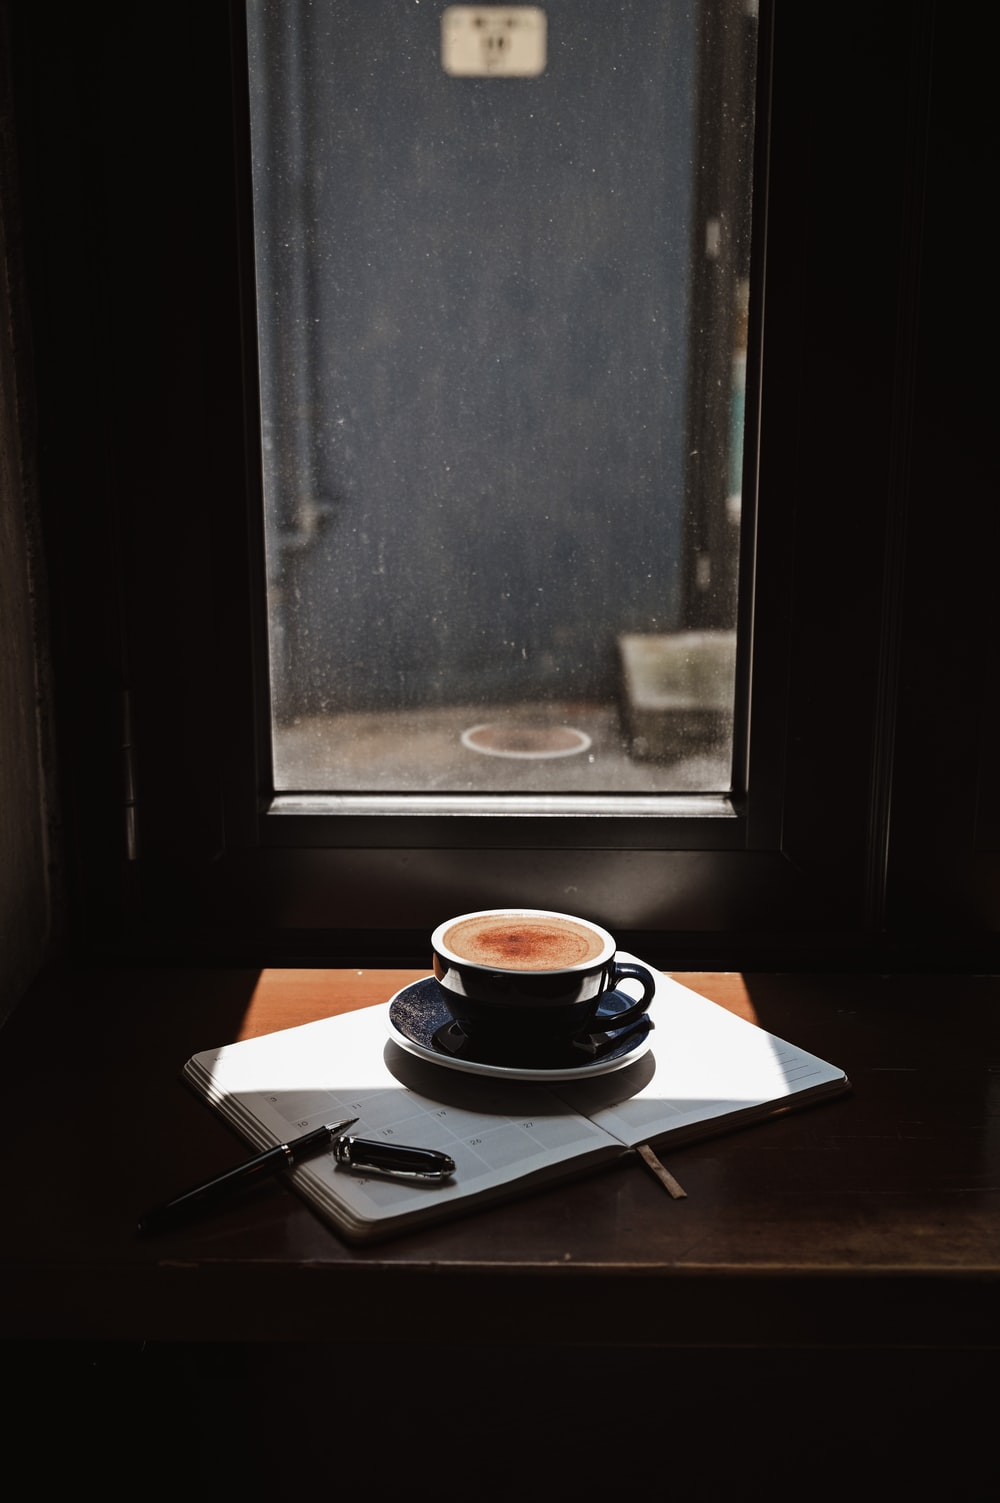 black and white ceramic teacup on saucer on brown wooden table